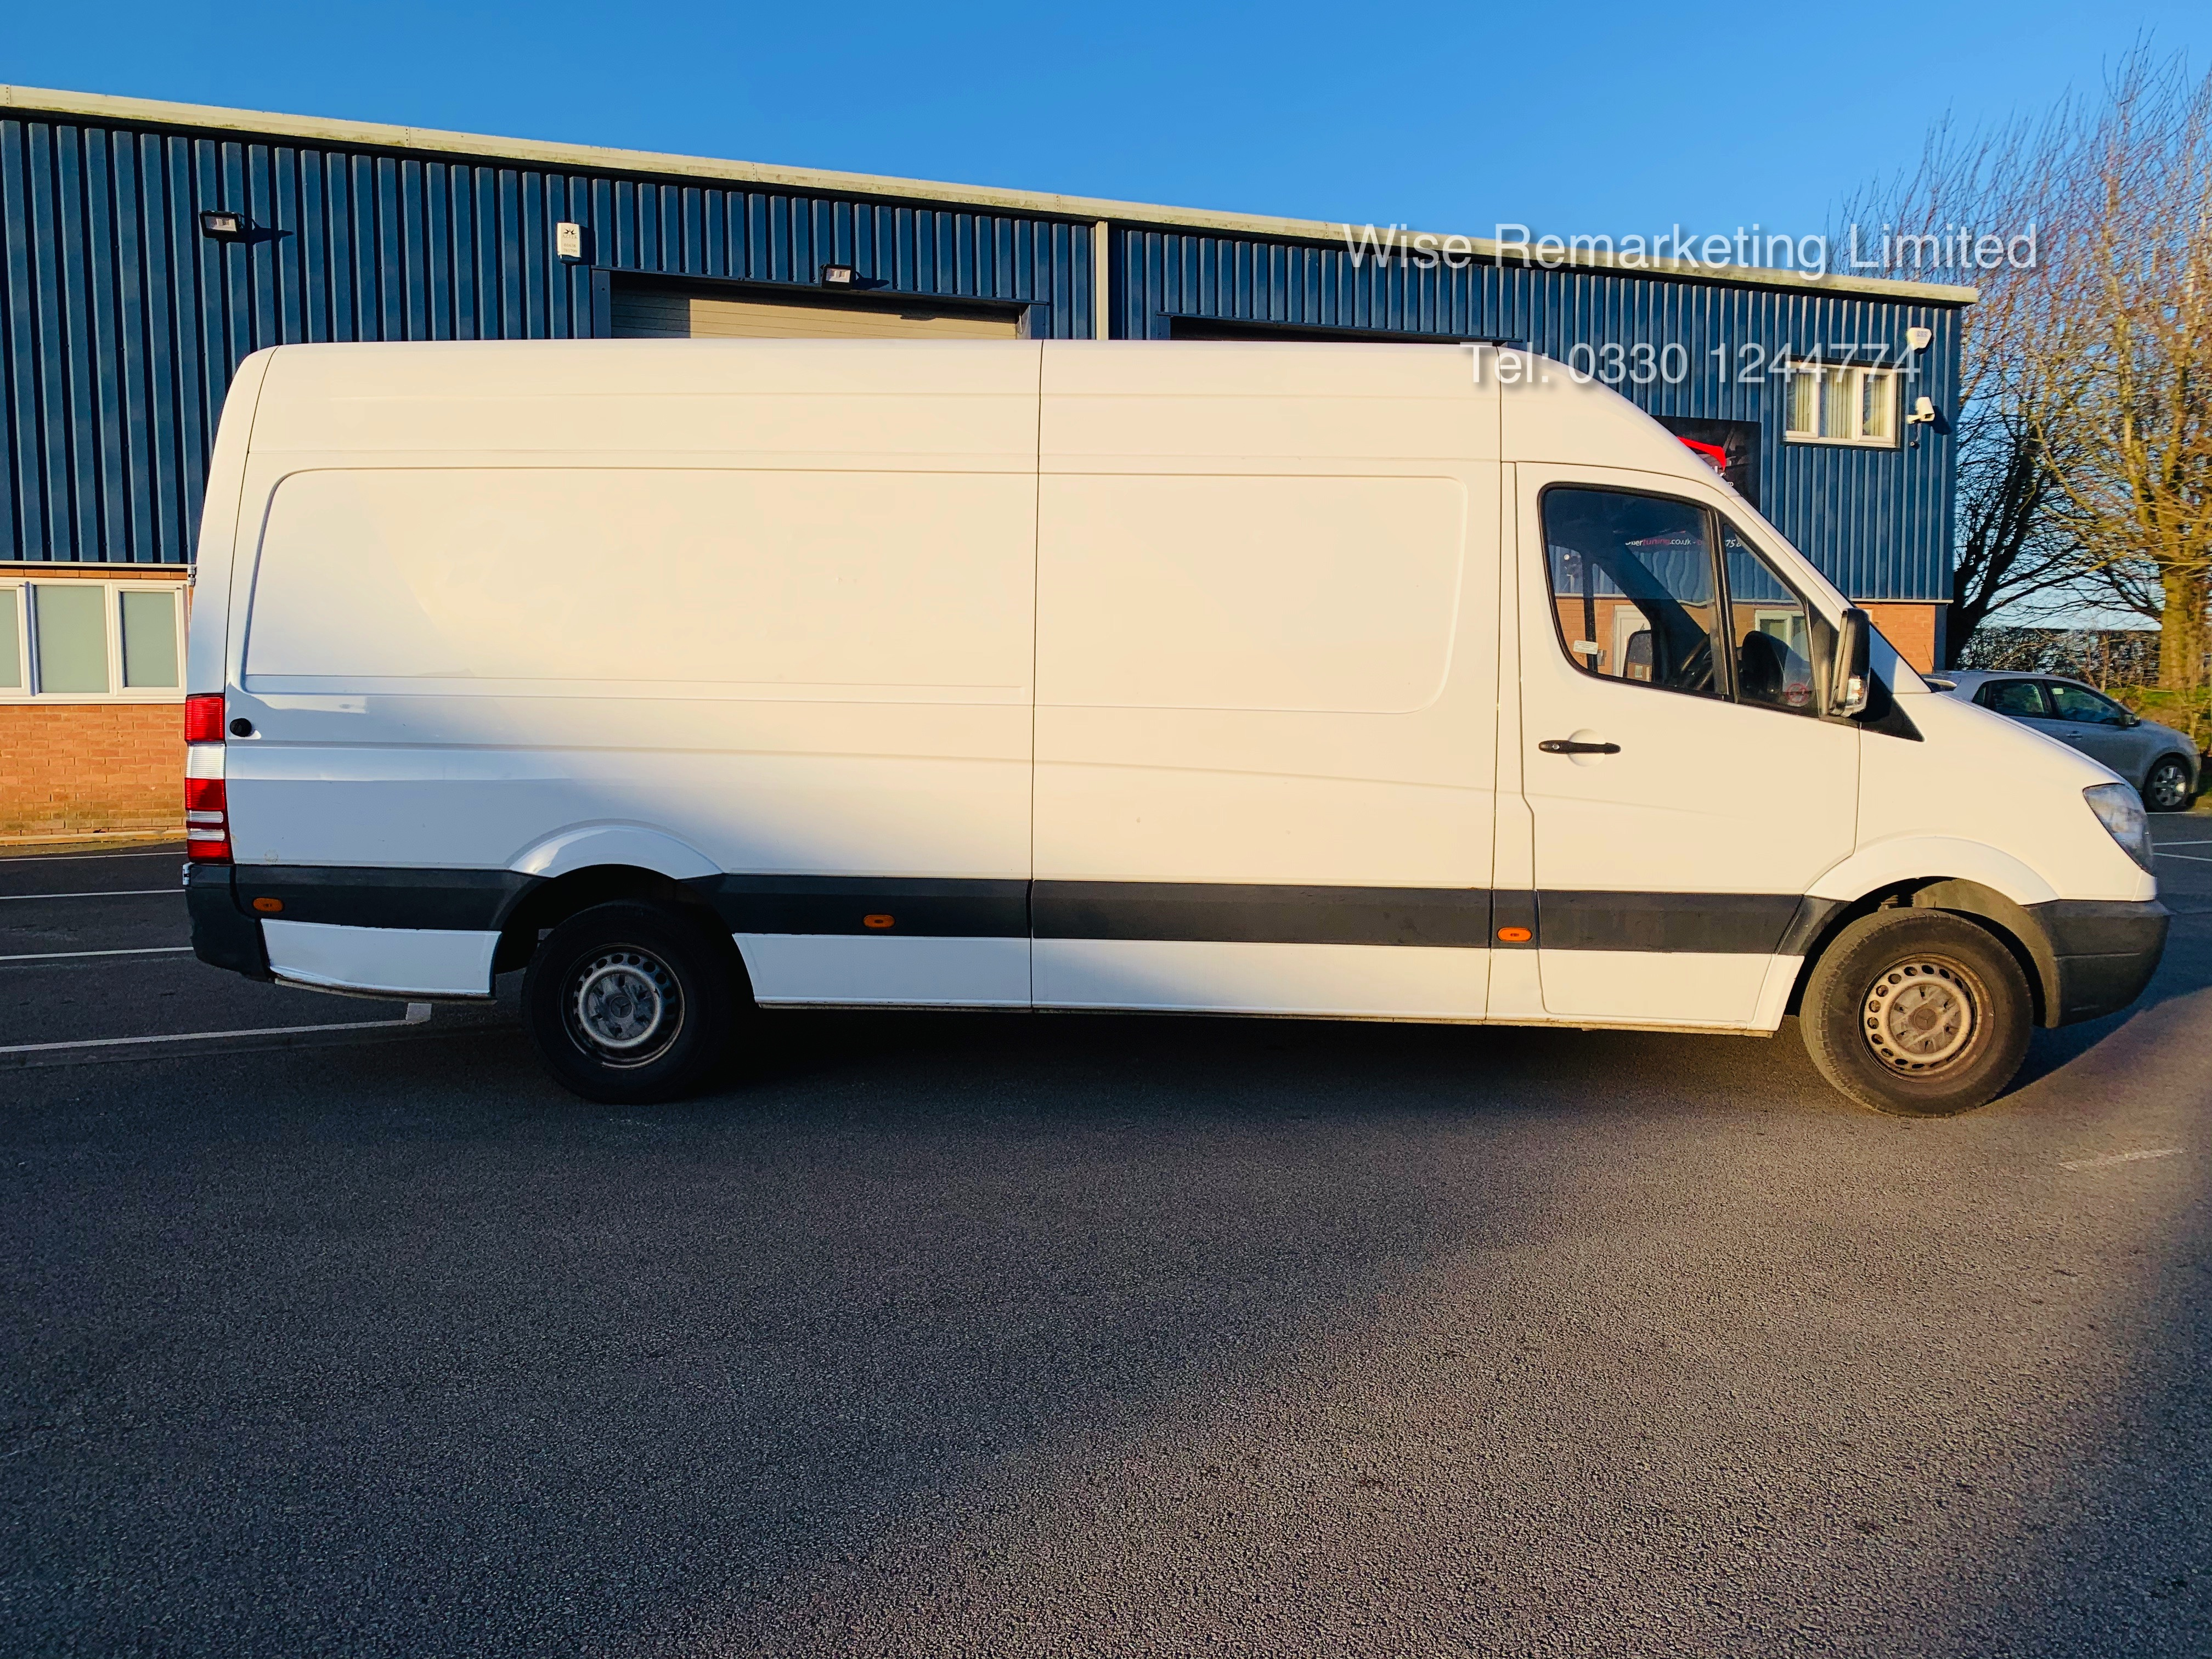 Mercedes Sprinter 316 2.1 CDI Long Wheel Base High Roof Van - 2013 13 Reg - 1 Owner From New - Image 2 of 20